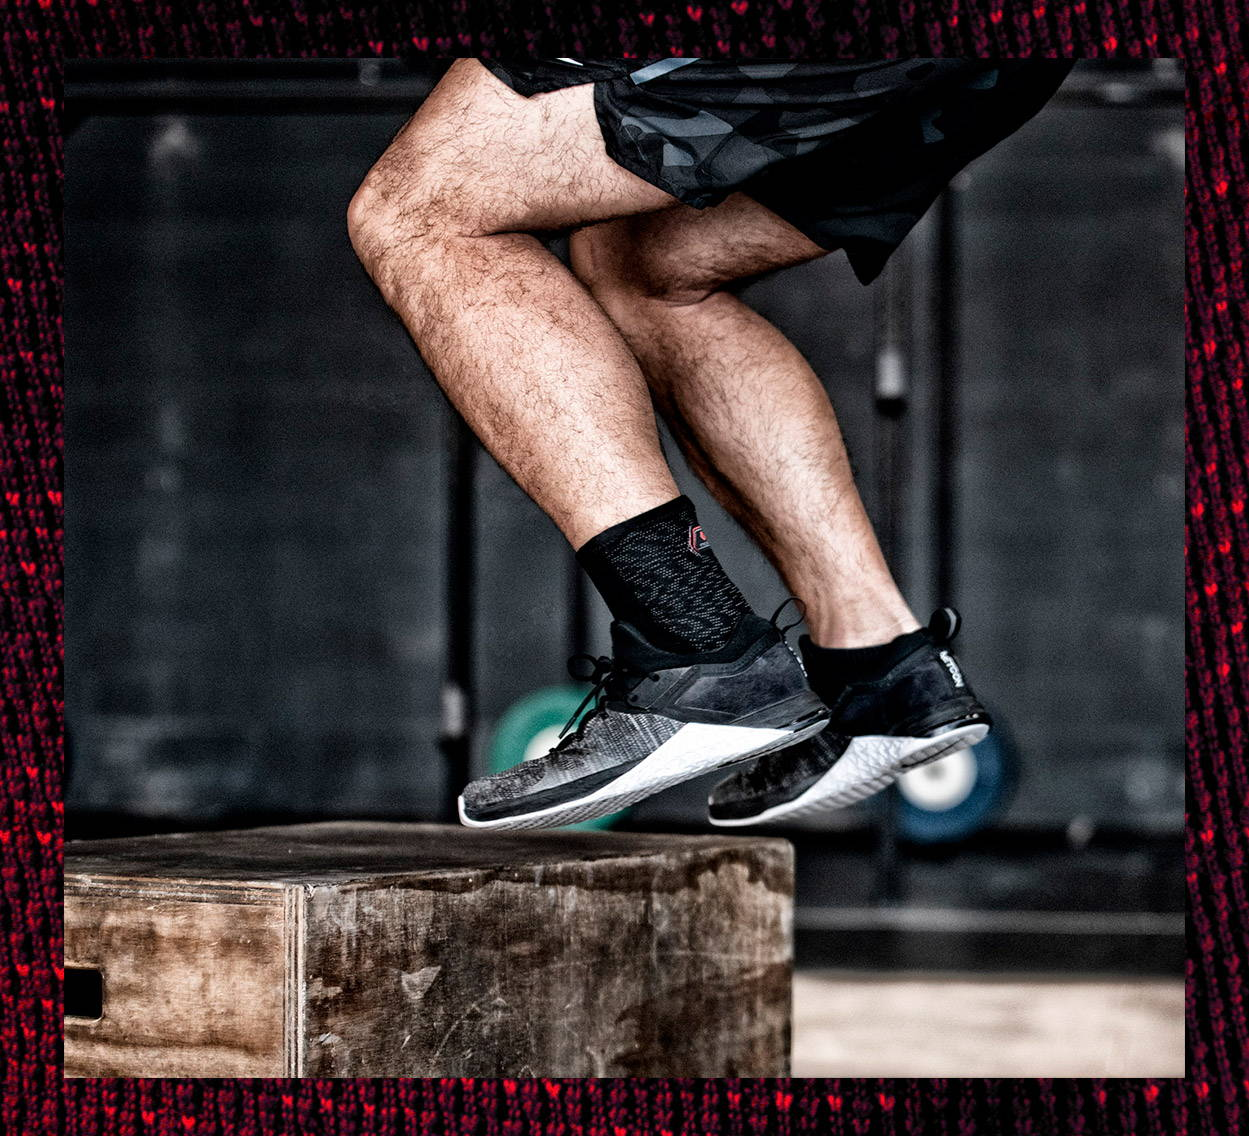 HyperBlend Ankle Sleeve Lifestyle, CrossFit, Training, Ankle Support